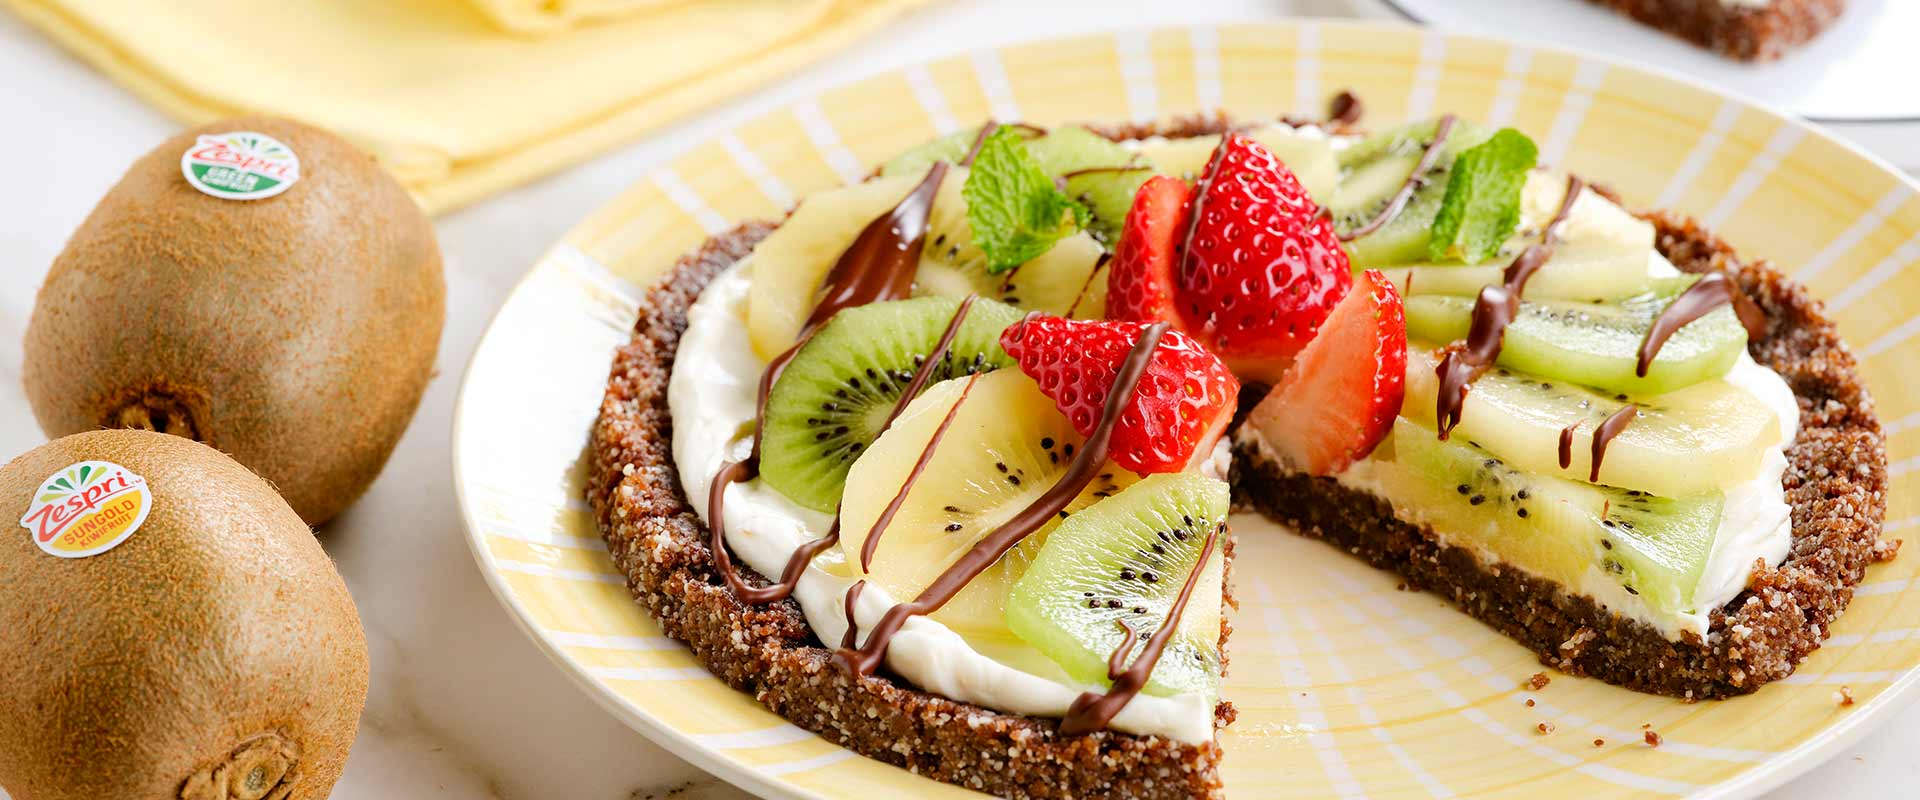 ZESPRI_14-01-2021_Dessert-Pizza-with-Zespri-Kiwifruit_Final02_1920x800.jpg